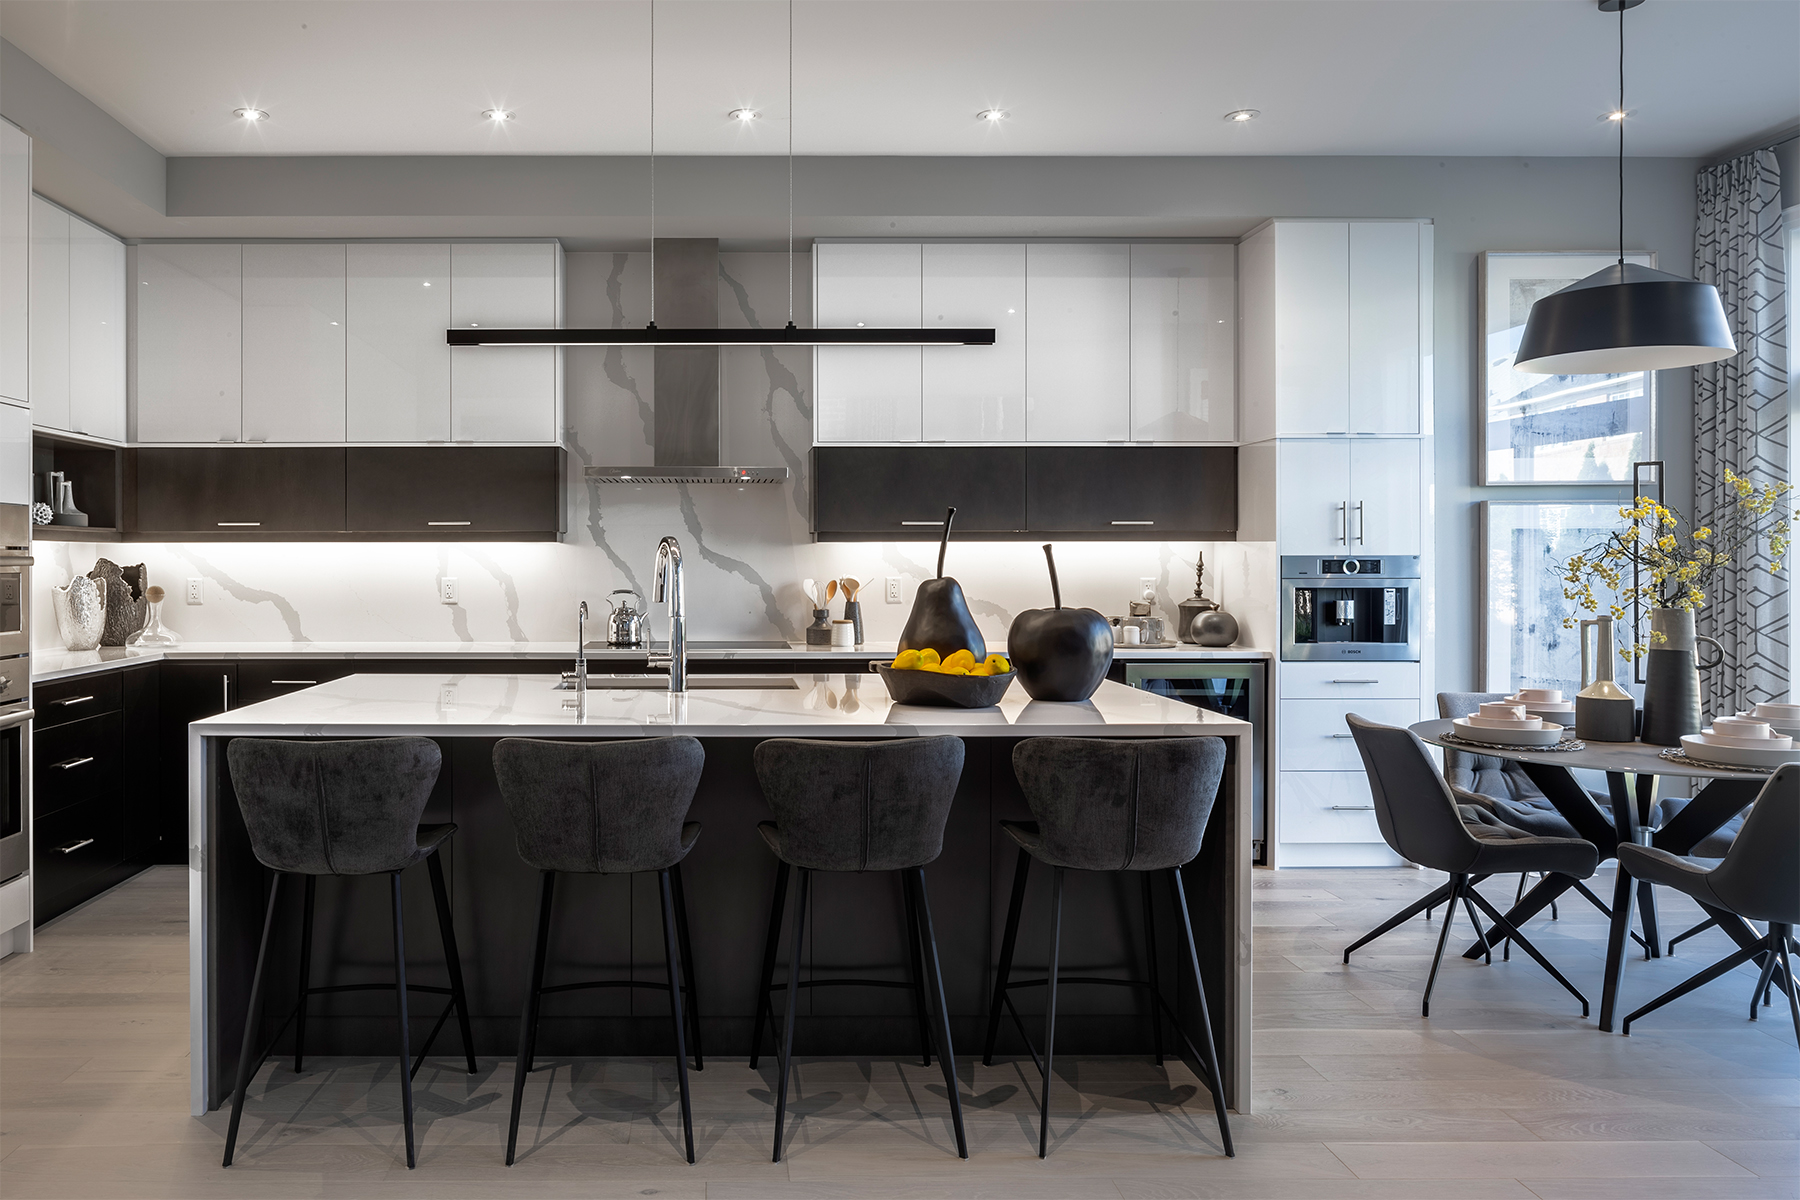 Windfield Plan Kitchen at Upper Joshua Creek in Oakville Ontario by Mattamy Homes